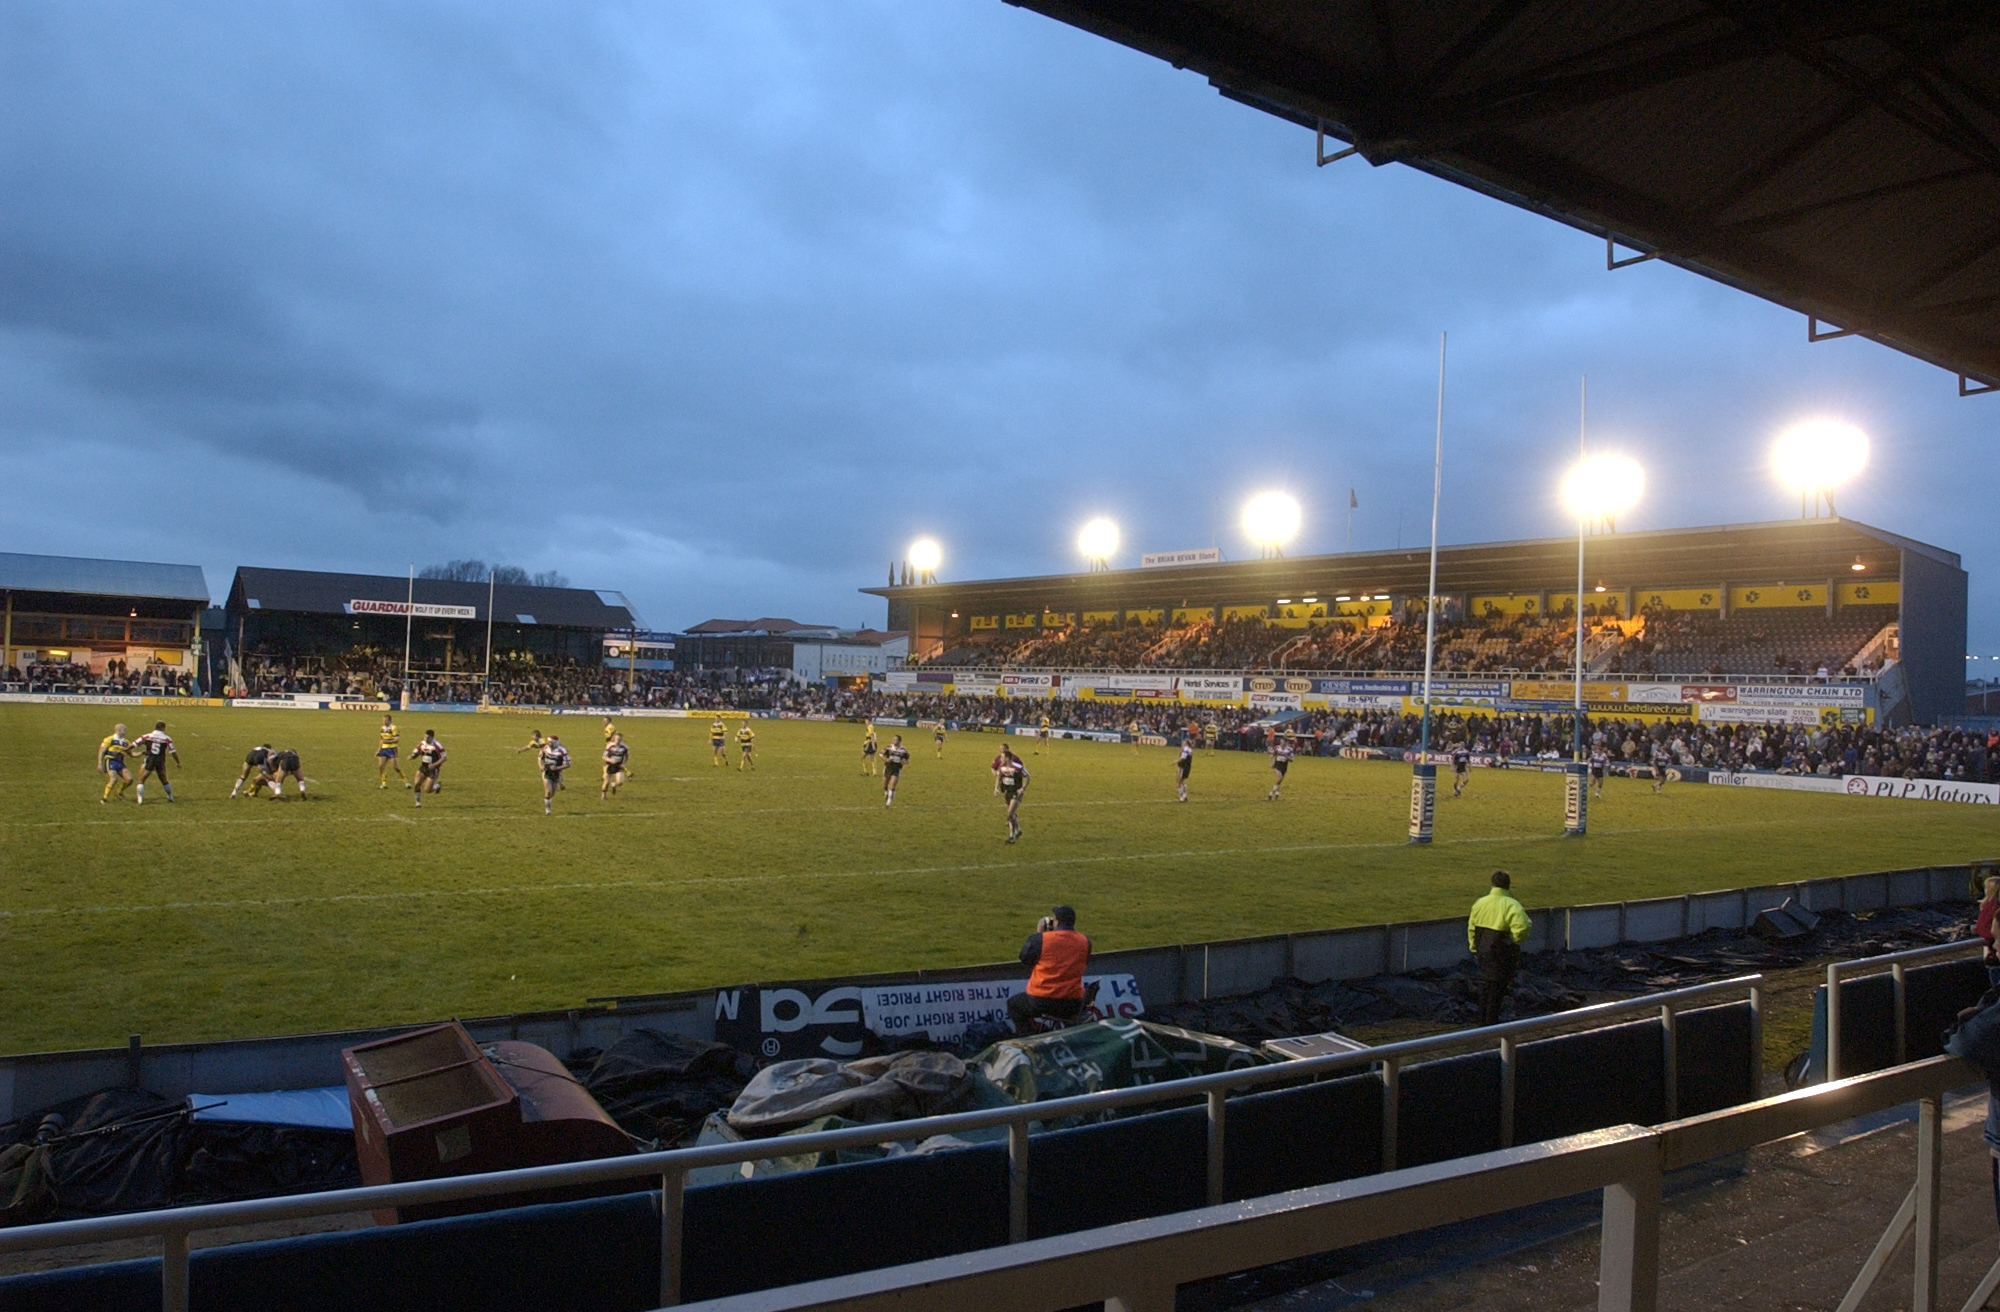 Wilderspool game a sell out